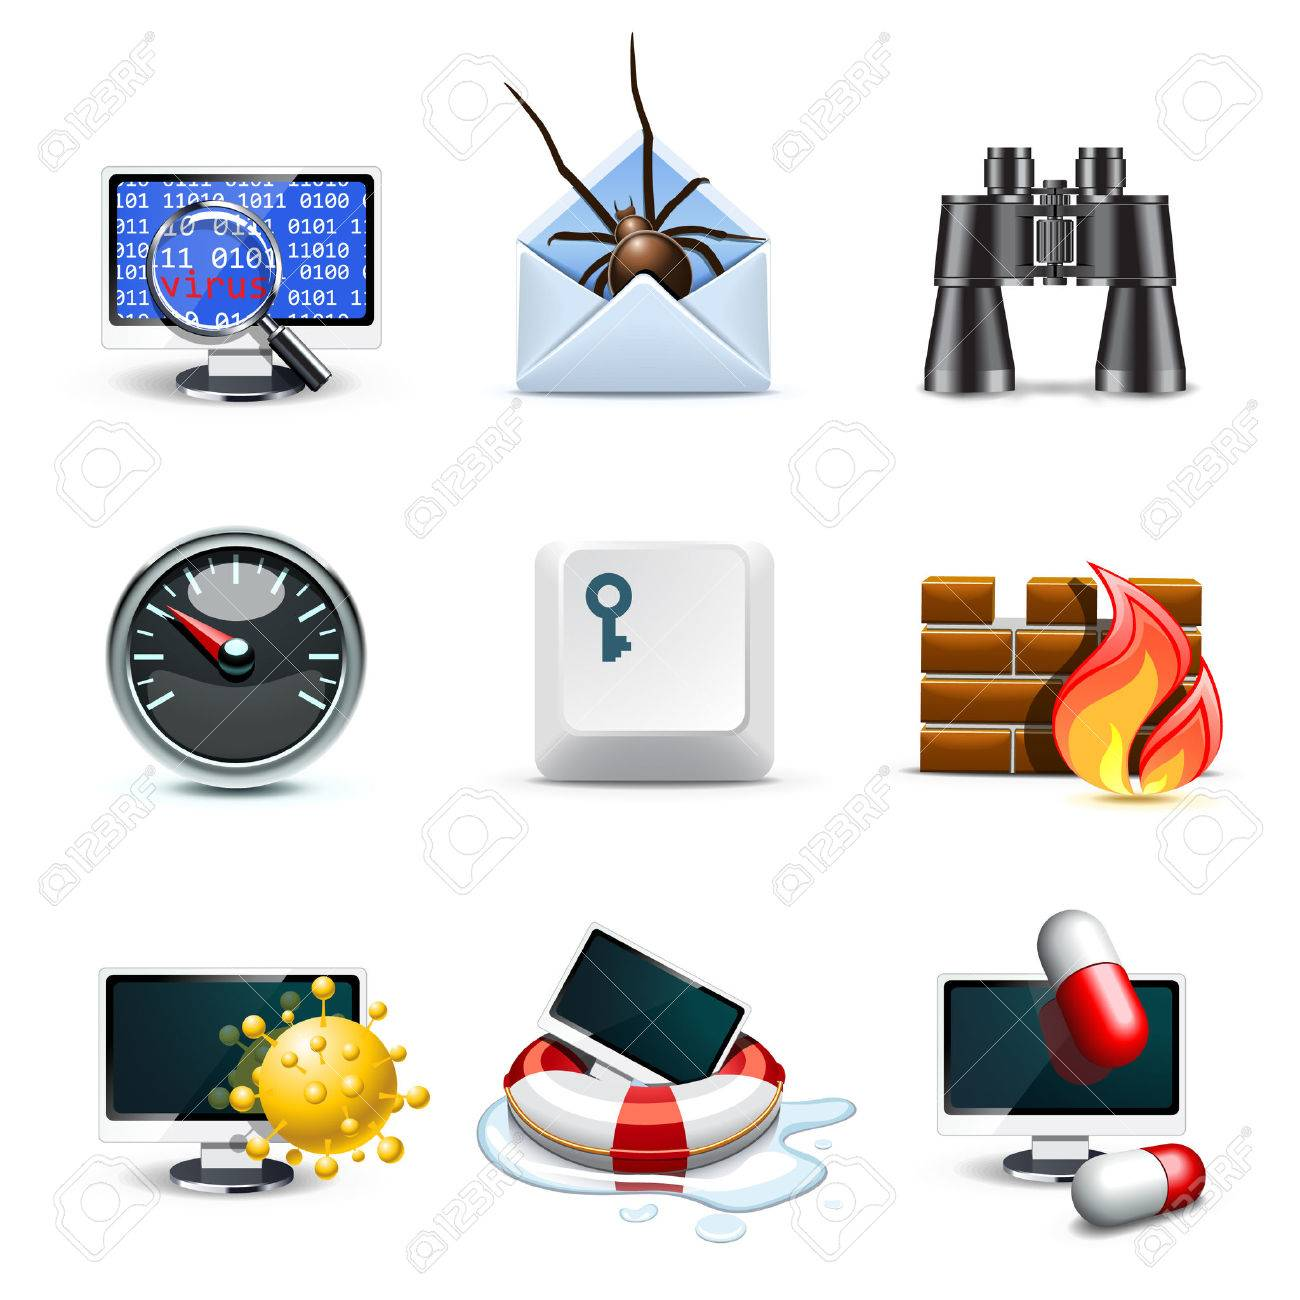 Computer security icons   Bella series Stock Vector - 9134930